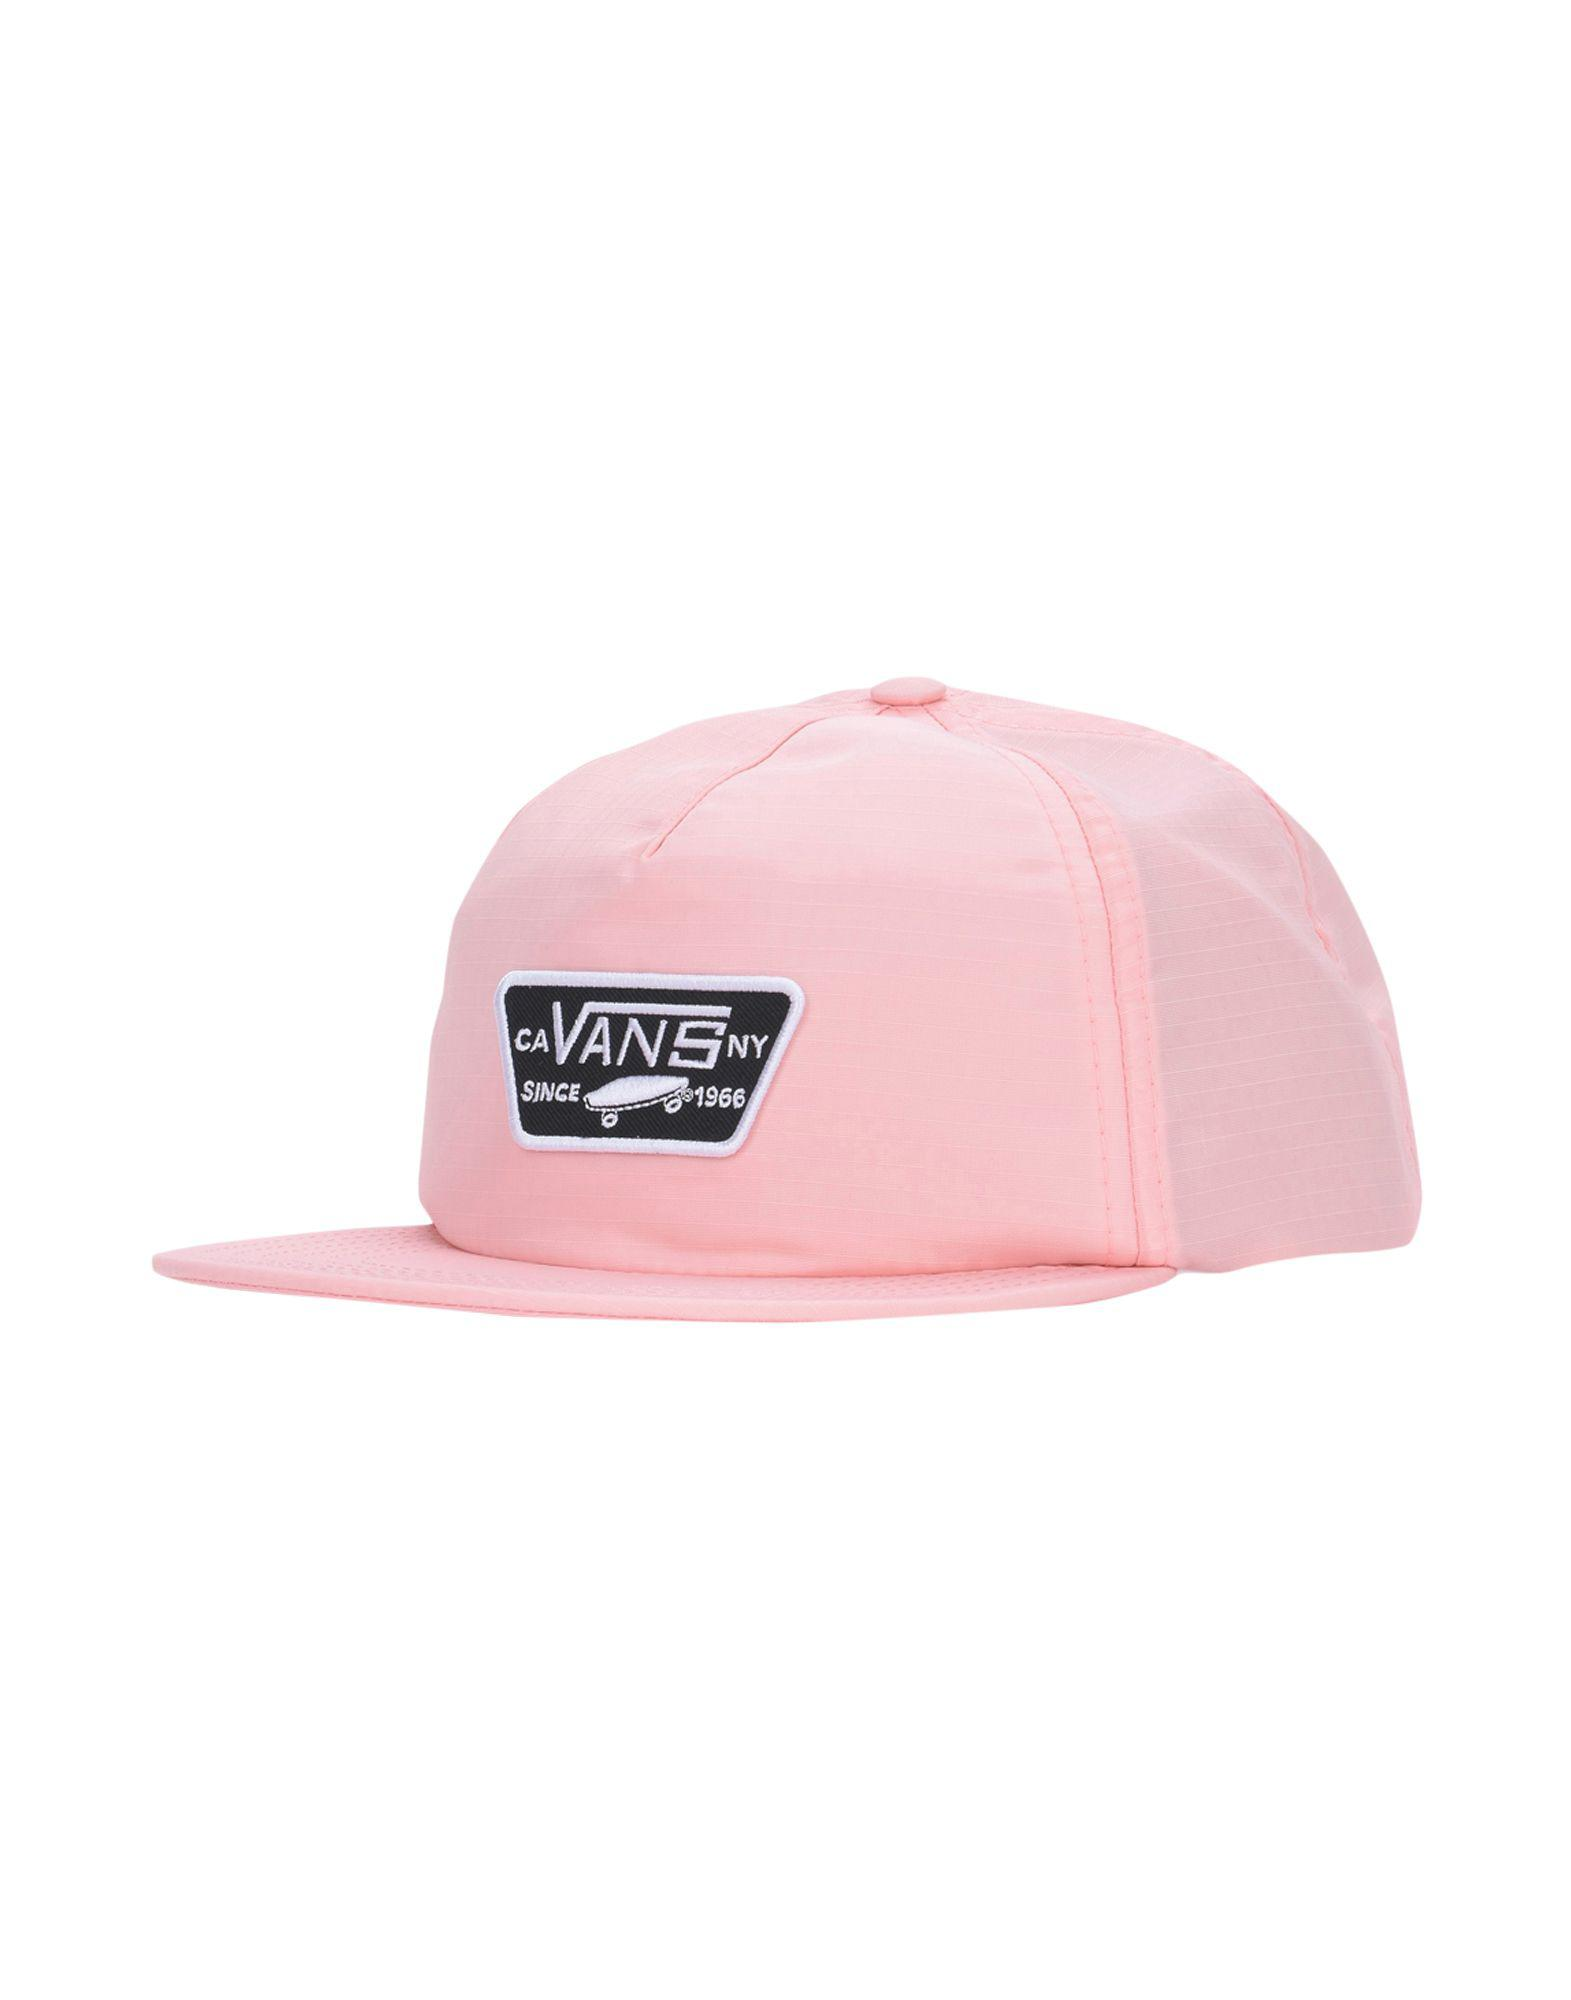 ad91be34e5b Vans Hat in Pink - Lyst